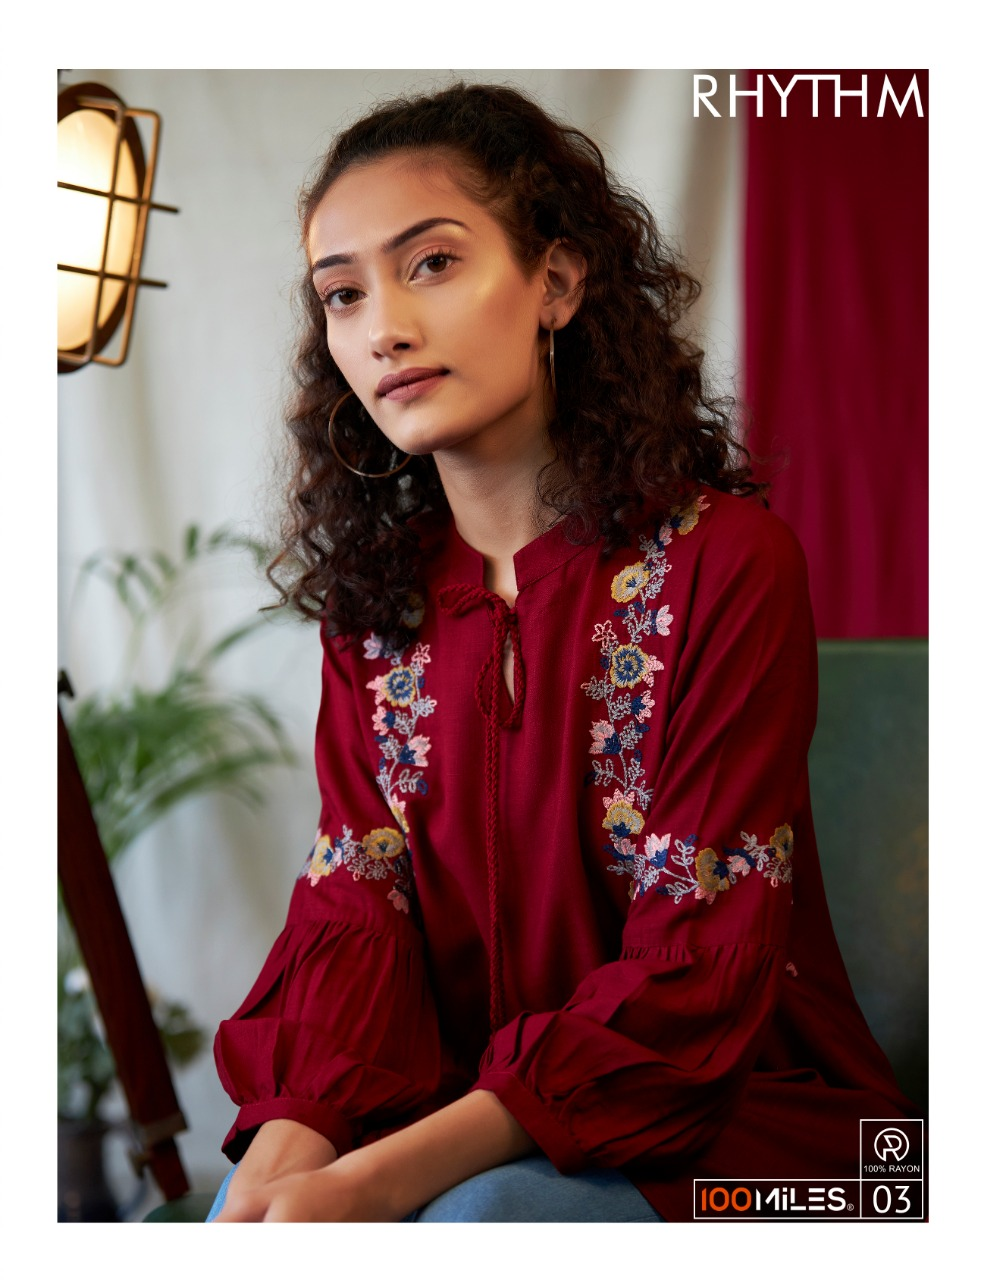 100 Miles Rhythm Rayon With Embroidery Work Readymade Short Western Kurti Tops At Wholesale Rate